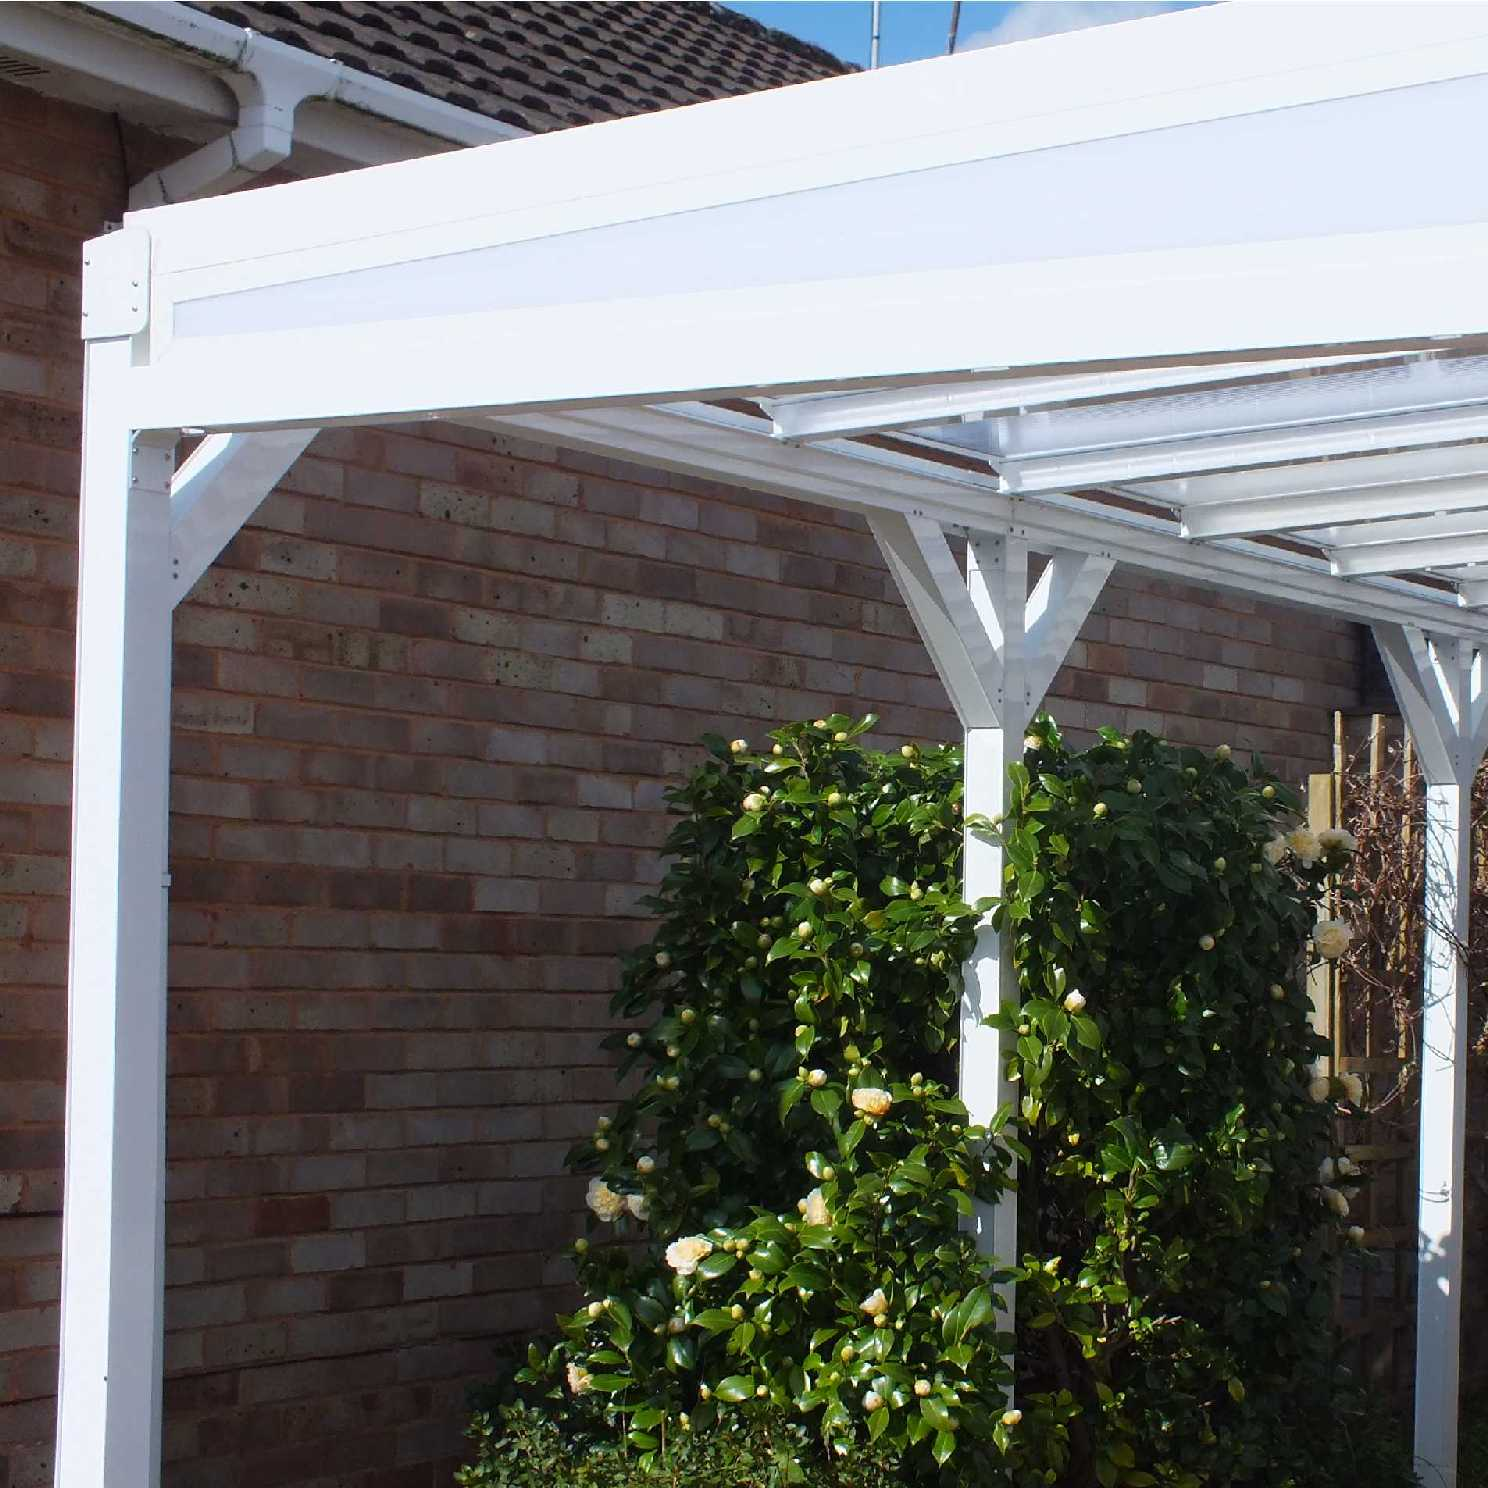 Omega Smart Lean-To Canopy with 16mm Polycarbonate Glazing - 5.2m (W) x 2.5m (P), (3) Supporting Posts from Omega Build